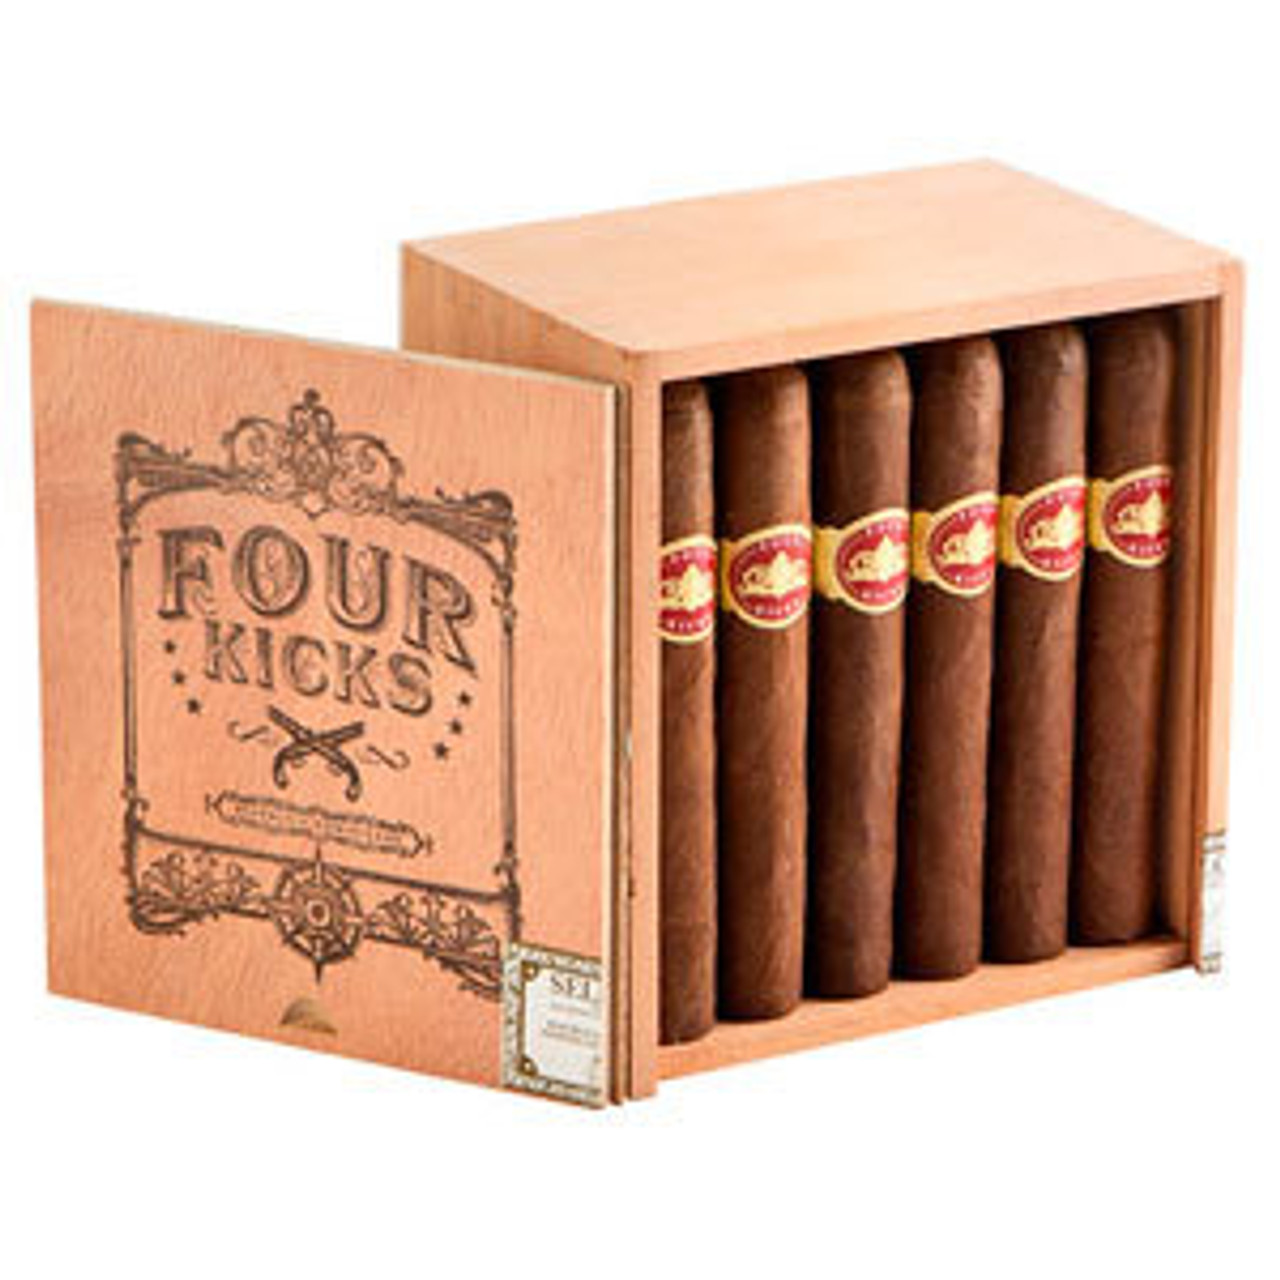 Four Kicks Seleccion No. 5 Cigars - 6.5 x 44 (Box of 24)